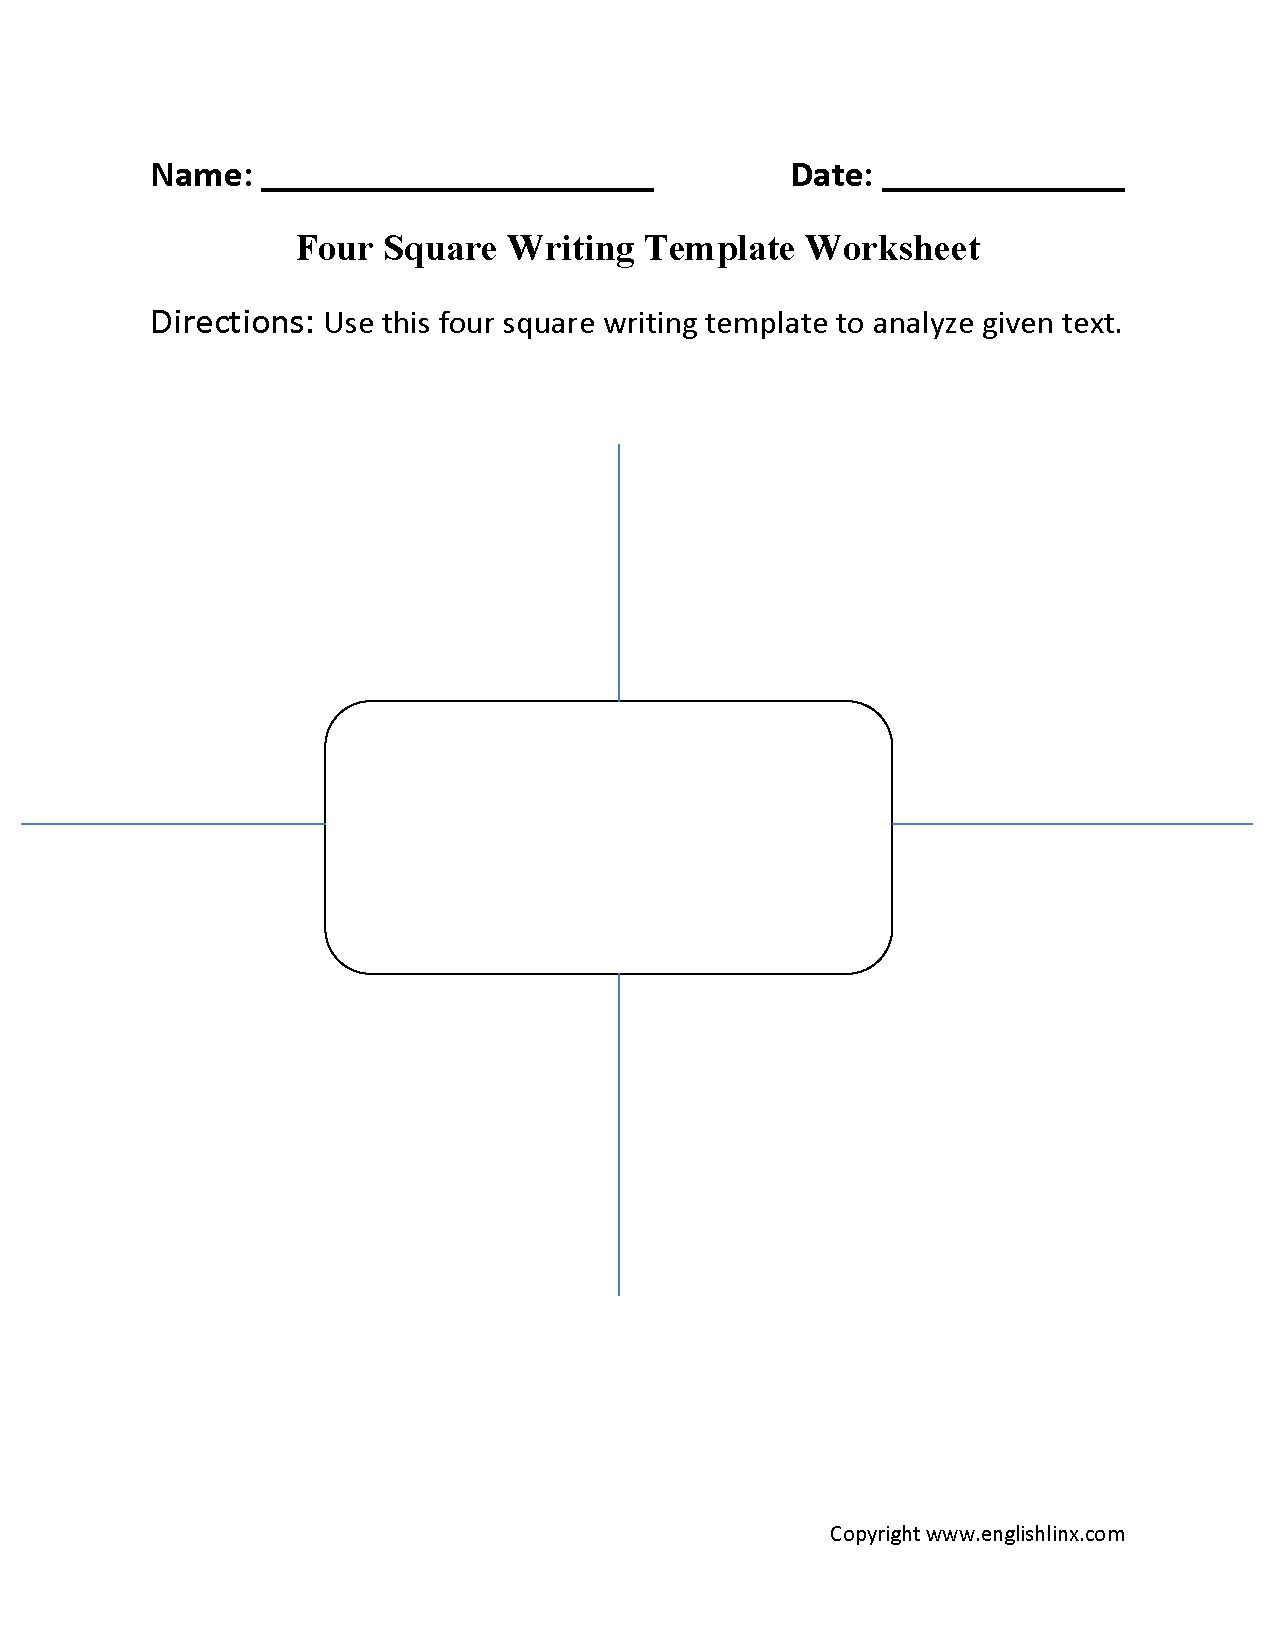 The Astounding Writing Template Worksheets Four Square Writing Template For Blank Four Square Writin In 2020 Four Square Writing Writing Templates Writing Worksheets